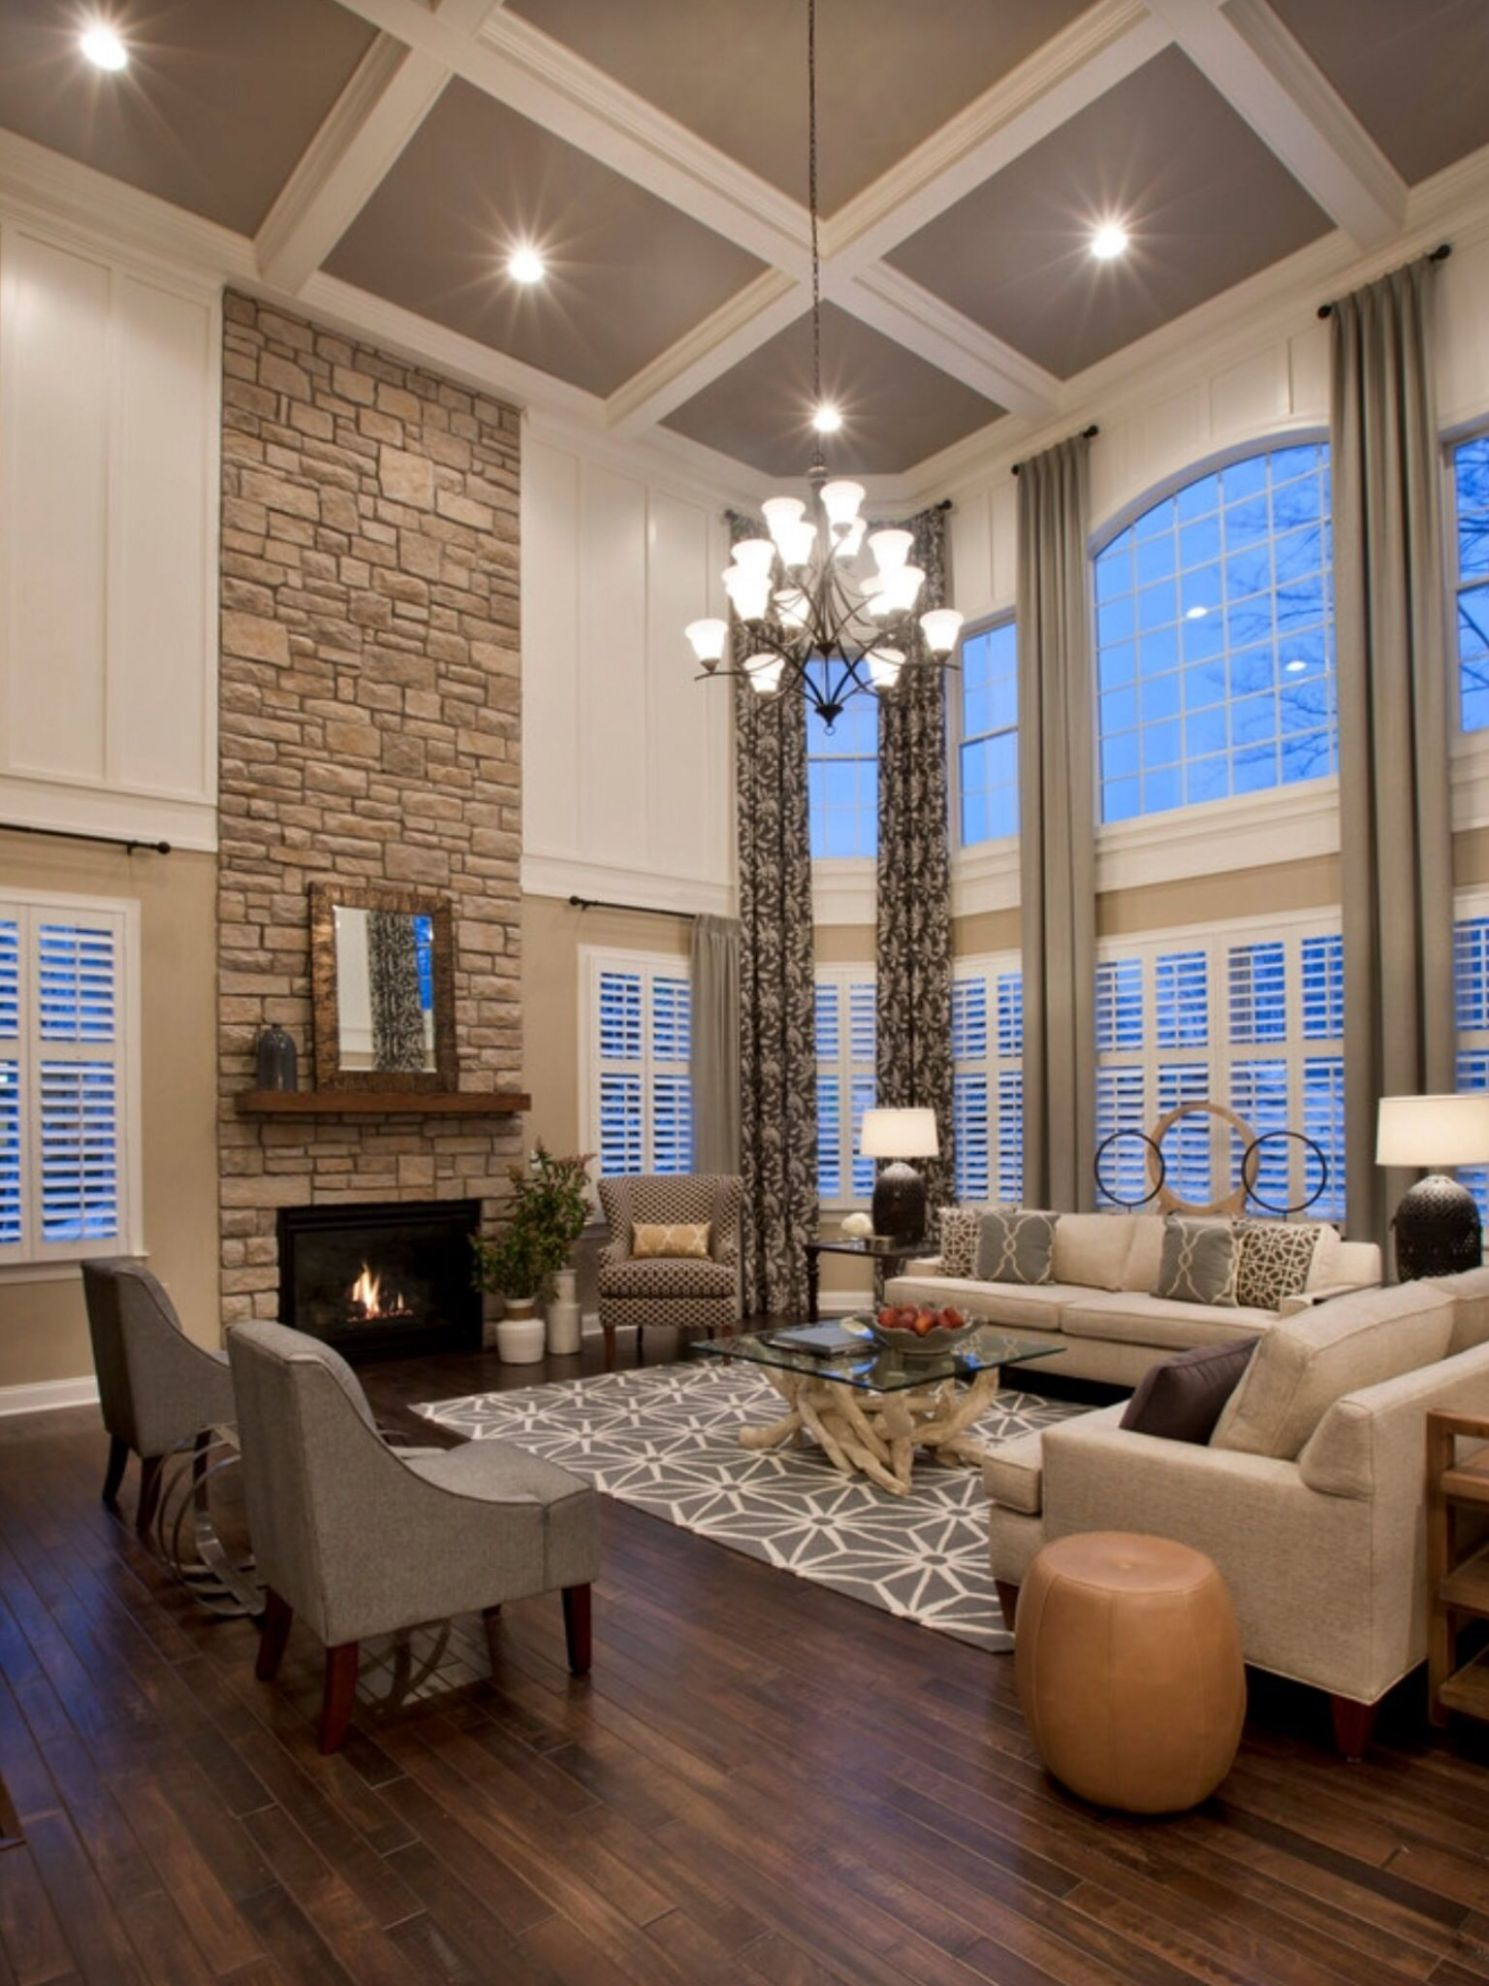 Houzz-Love this nice open space. | Home decor, House, Living room ..